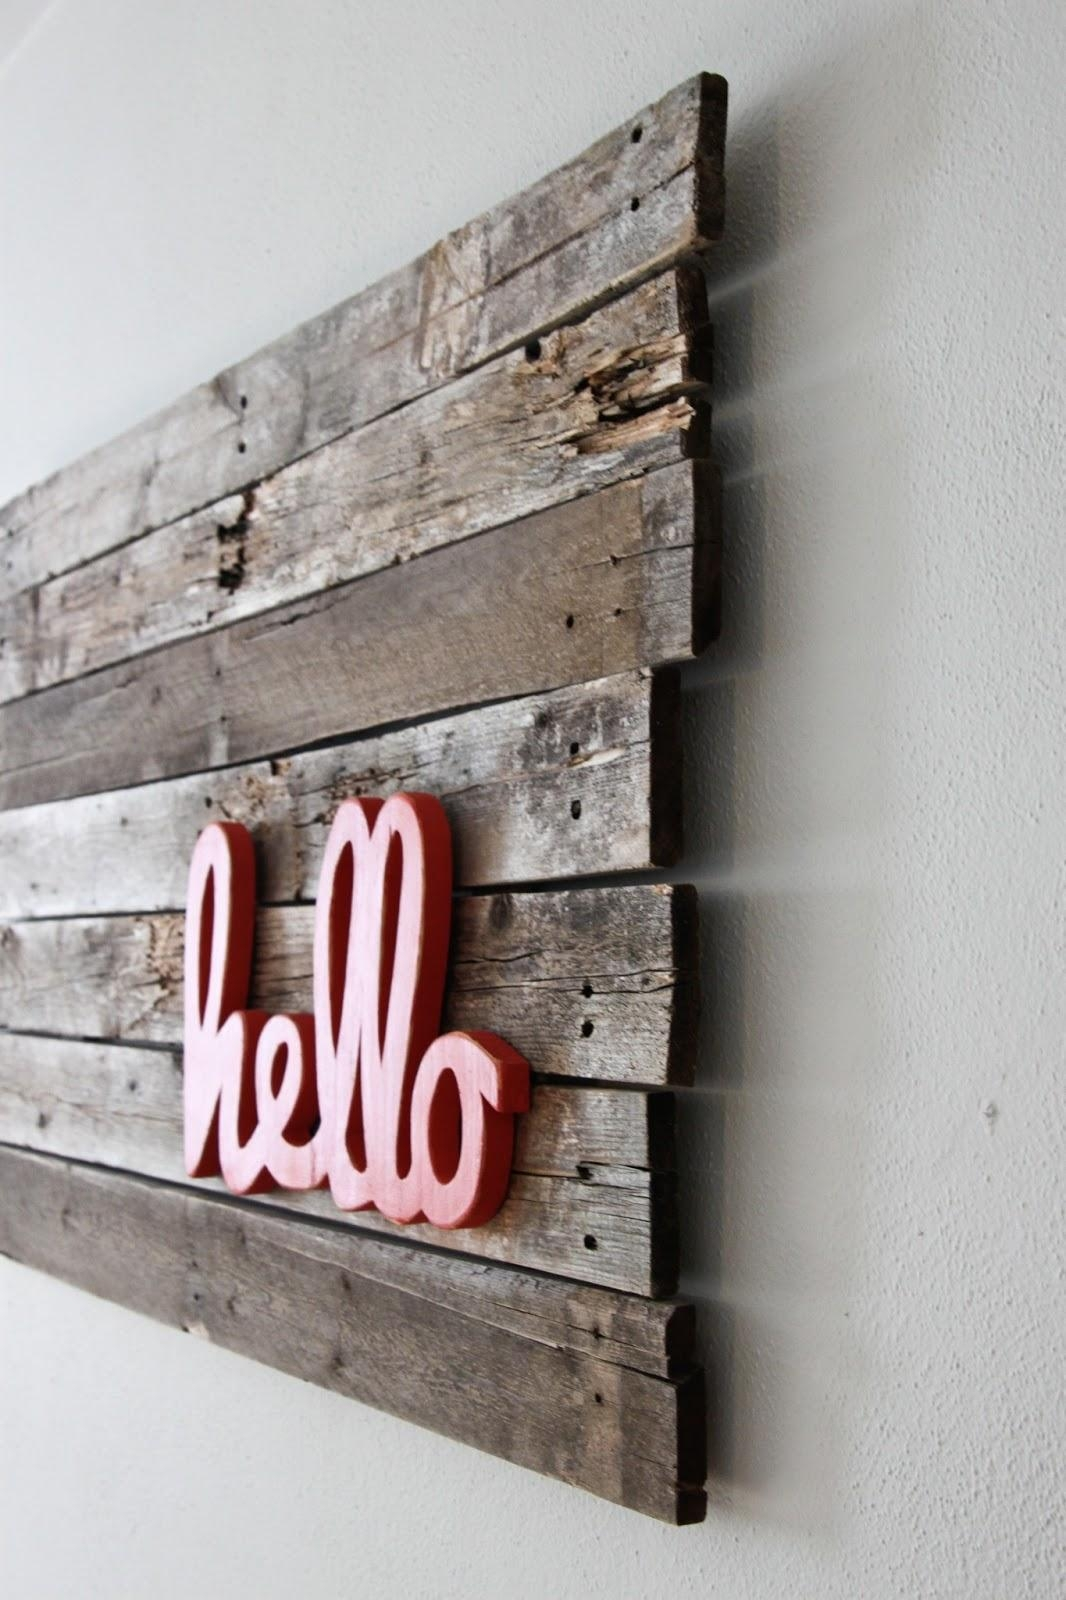 Wooden Word Decorations For Walls – Home Ideas Designs In Wooden Word Art For Walls (Image 17 of 20)